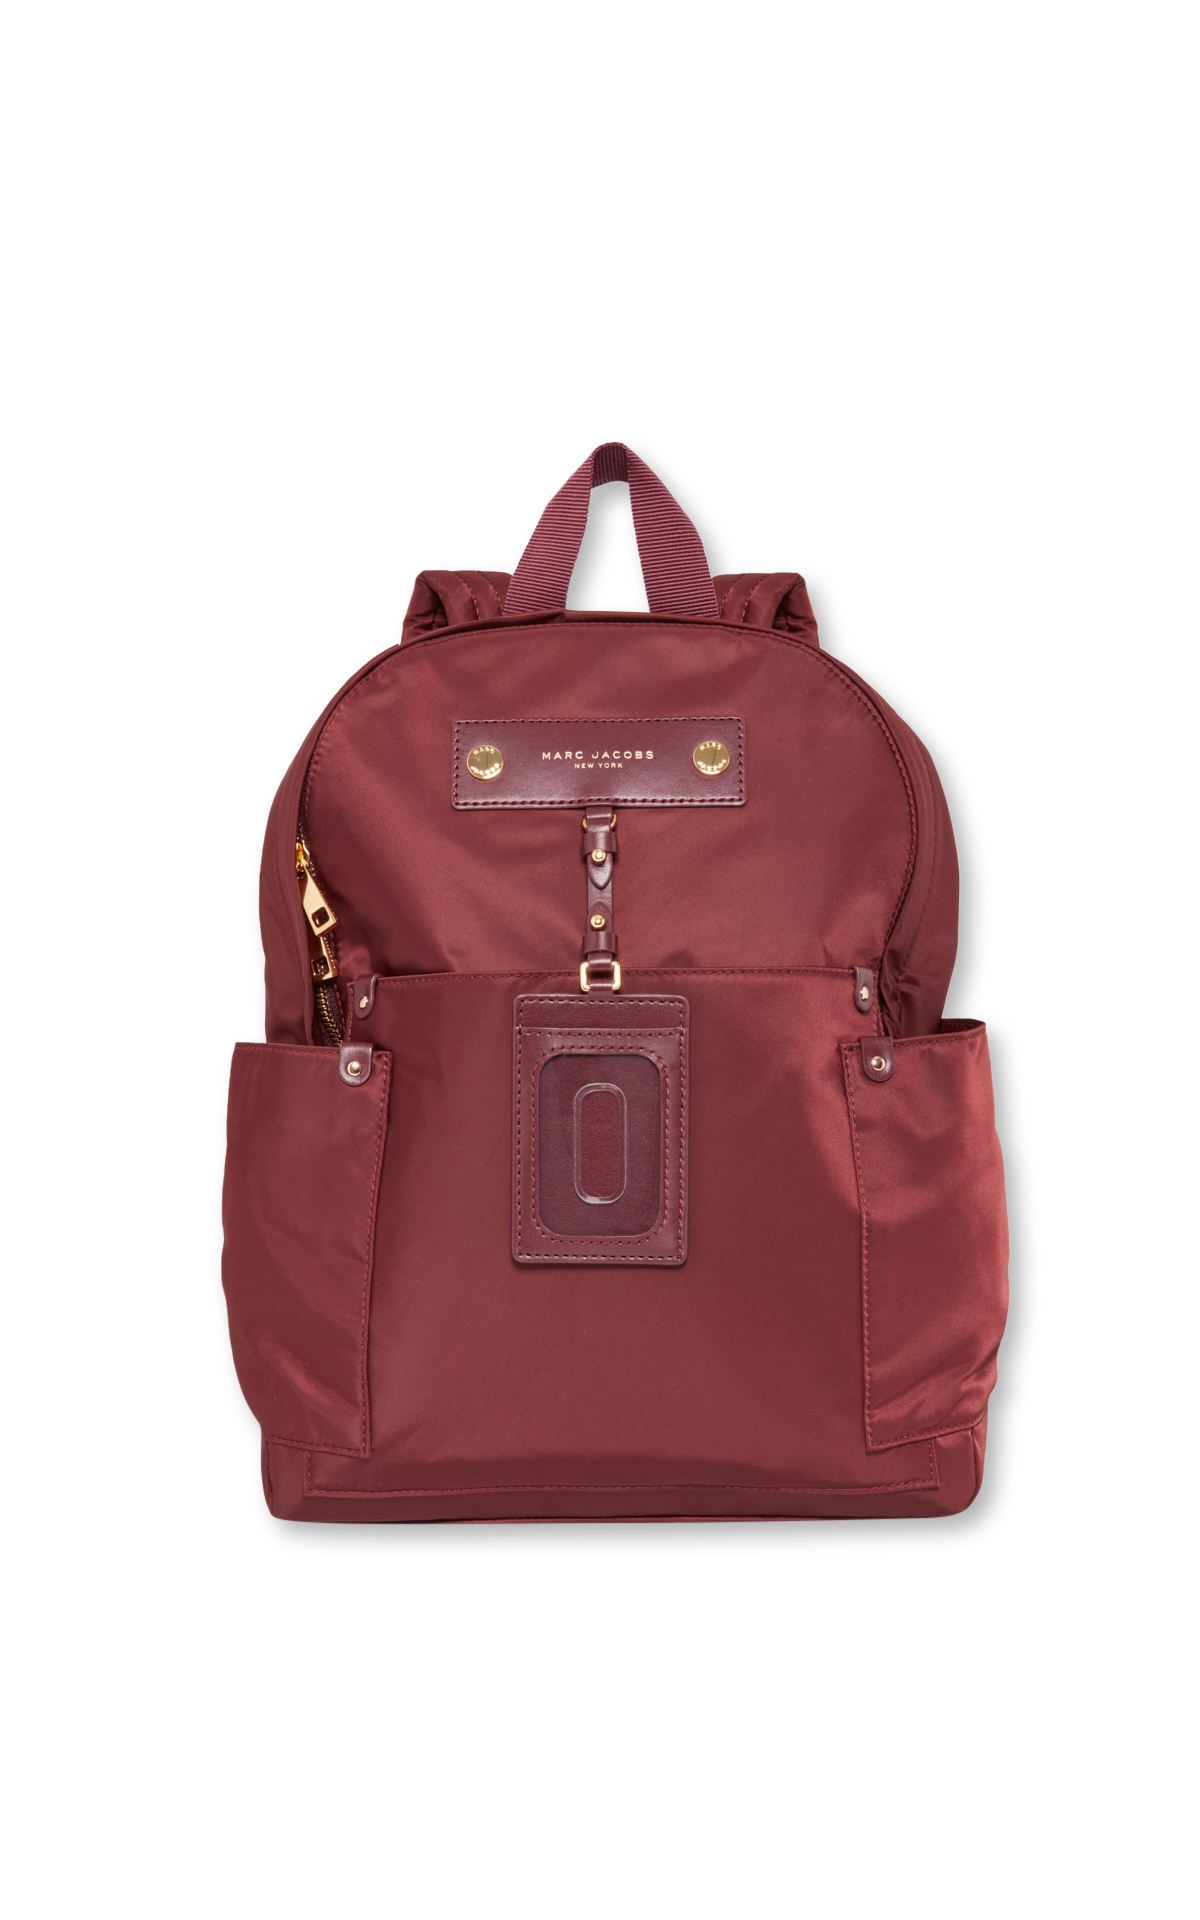 Marc Jacobs Burgundy backpac